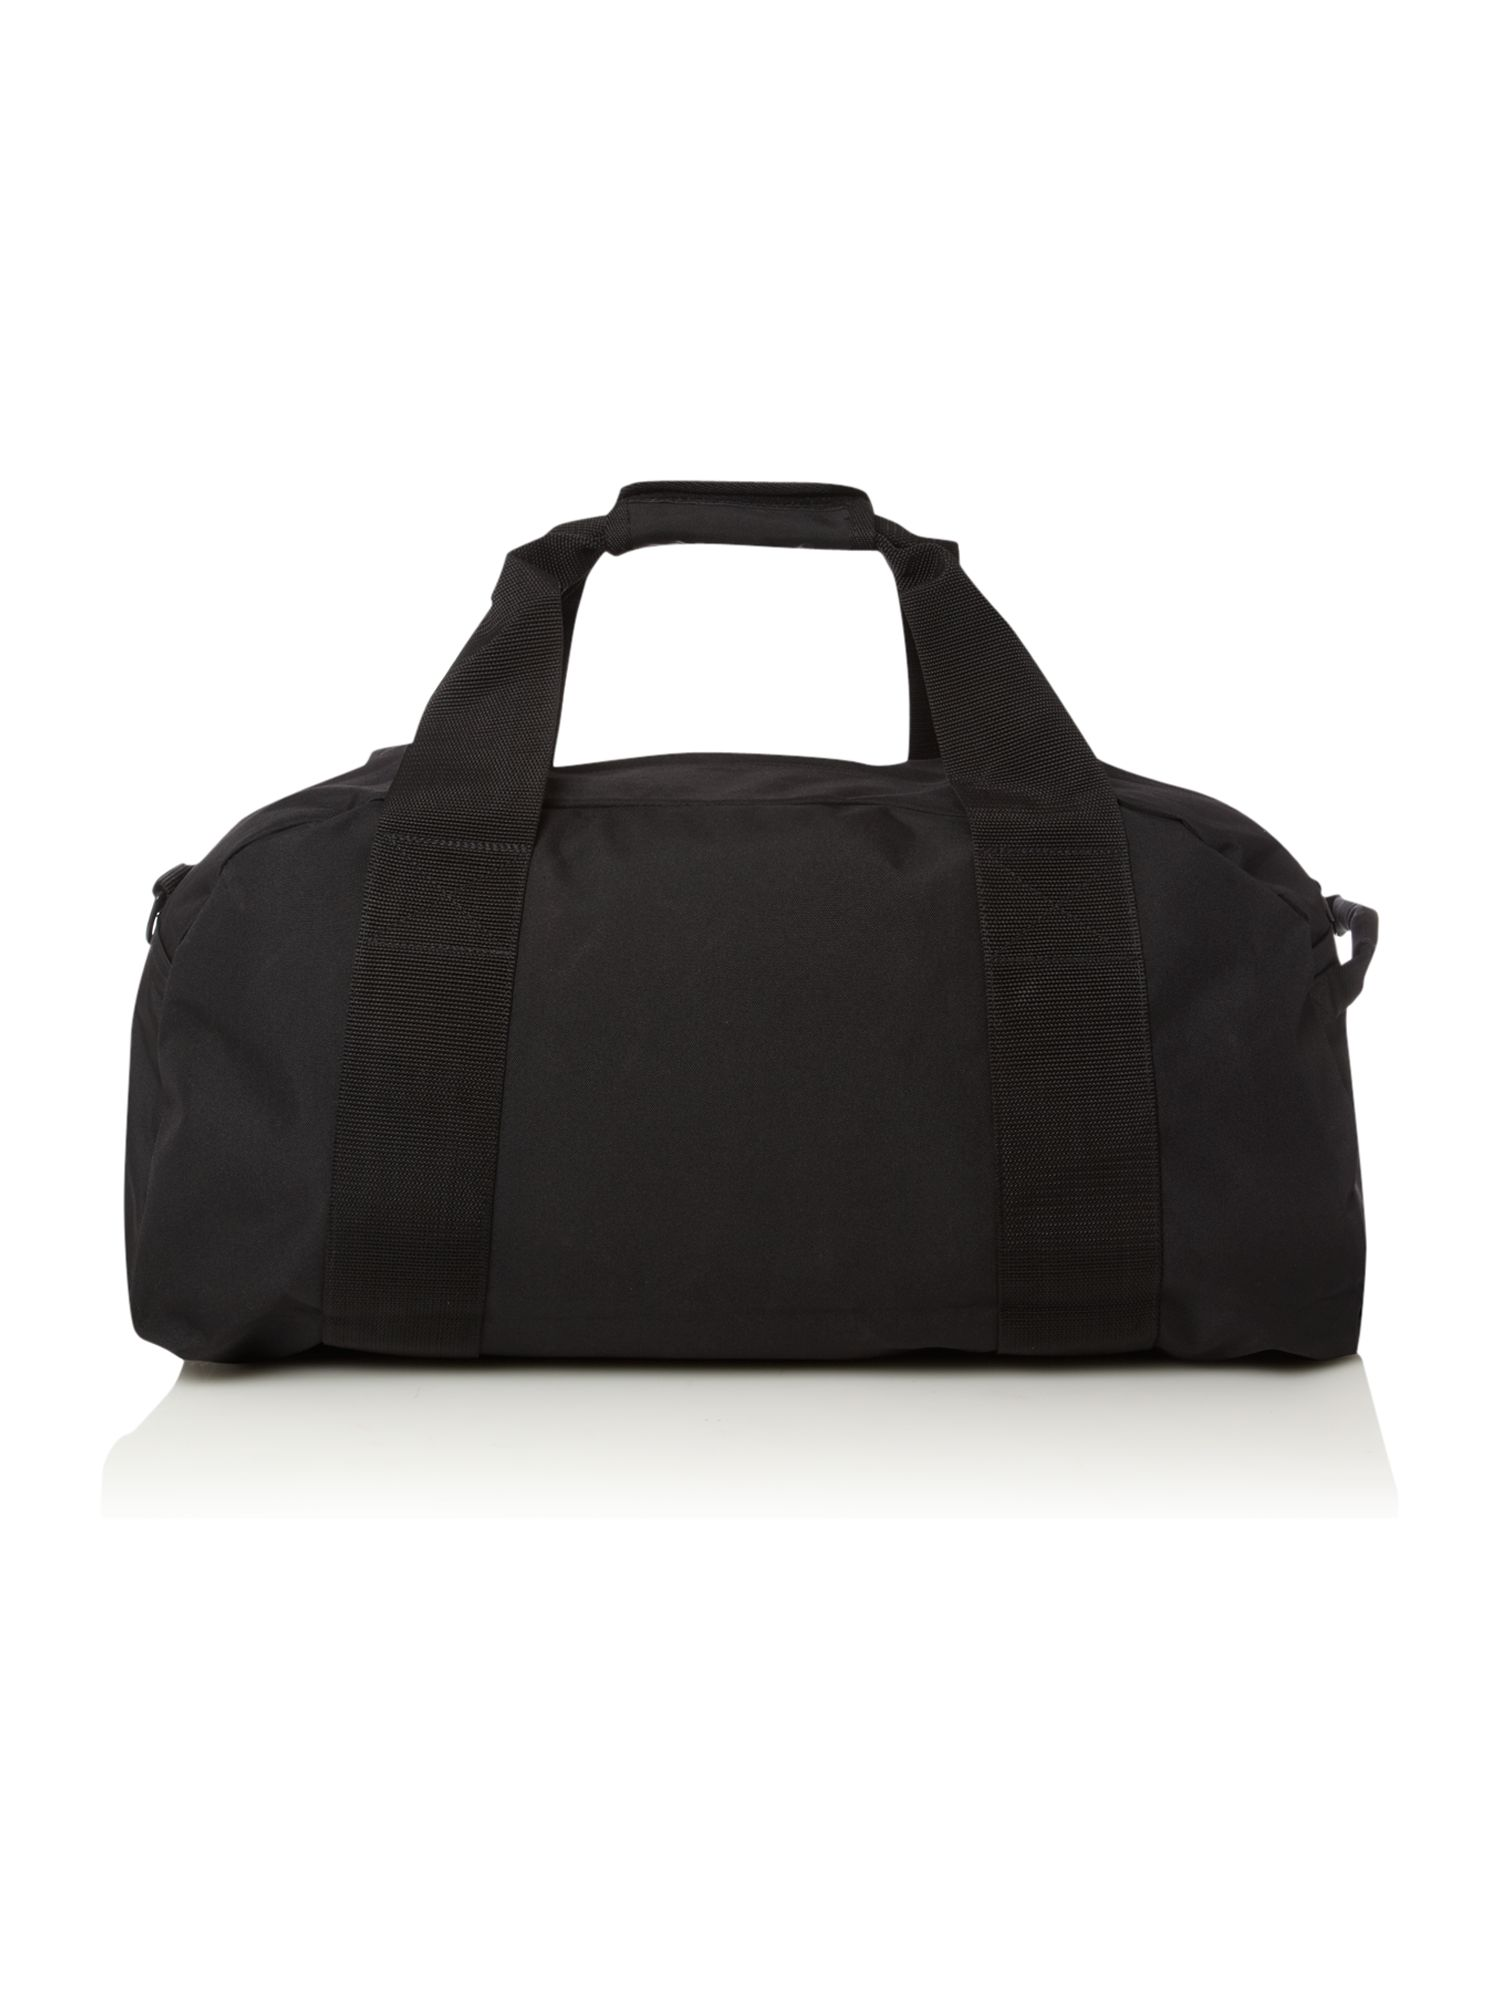 Station Bag Black